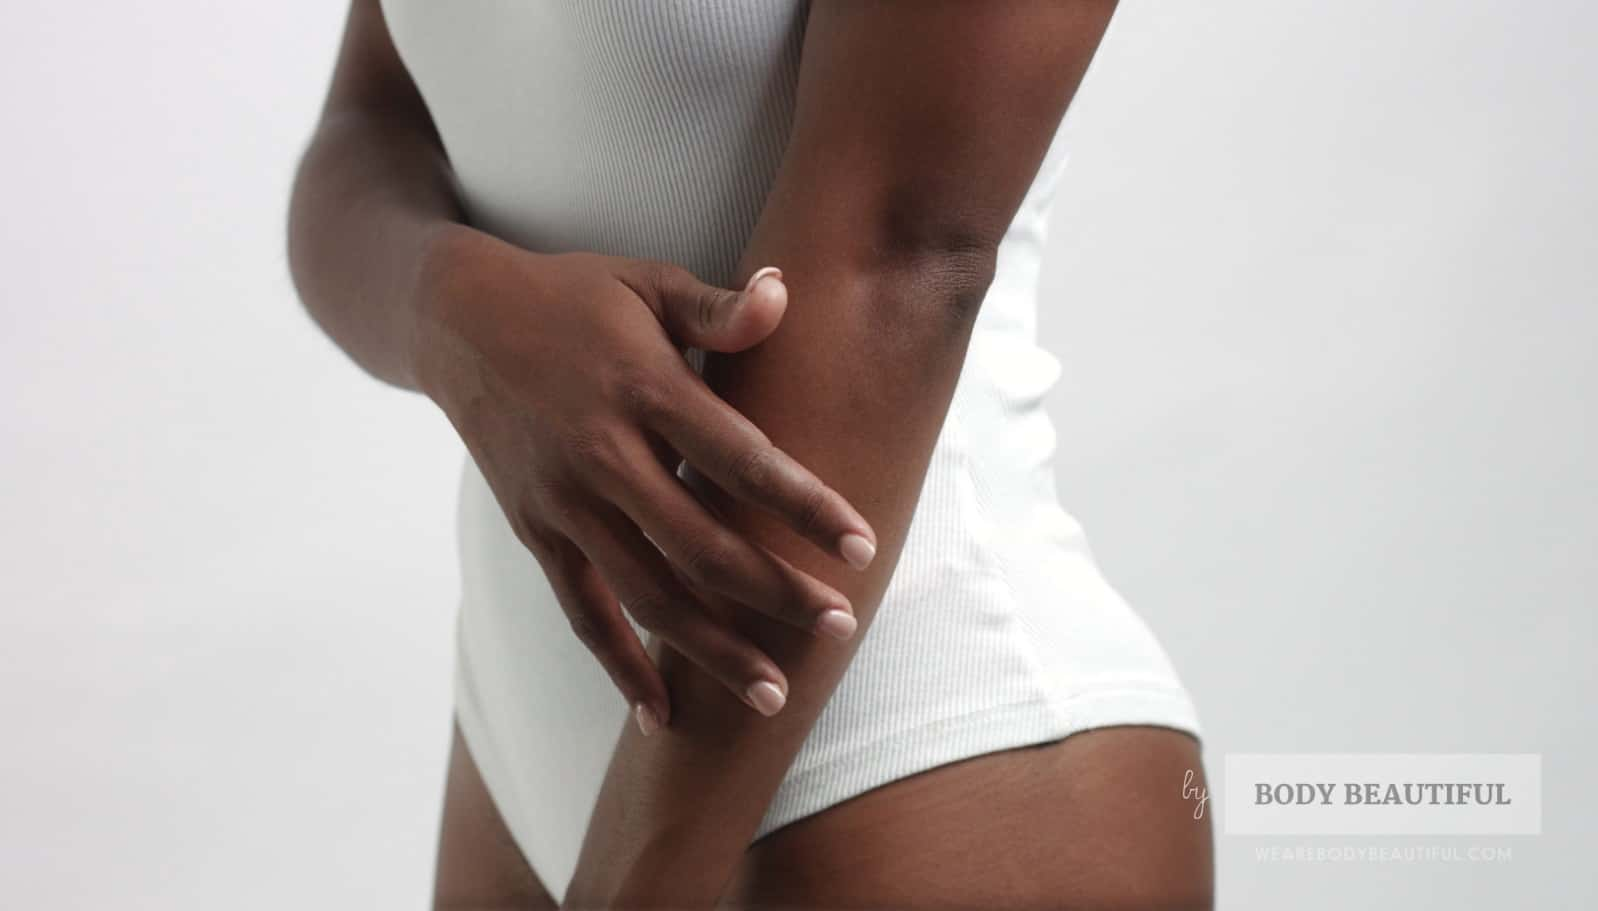 Not all home laser & IPL devices are safe for dark skin. See which are best for dark & black skin in this guide from weAreBodyBeautiful.com